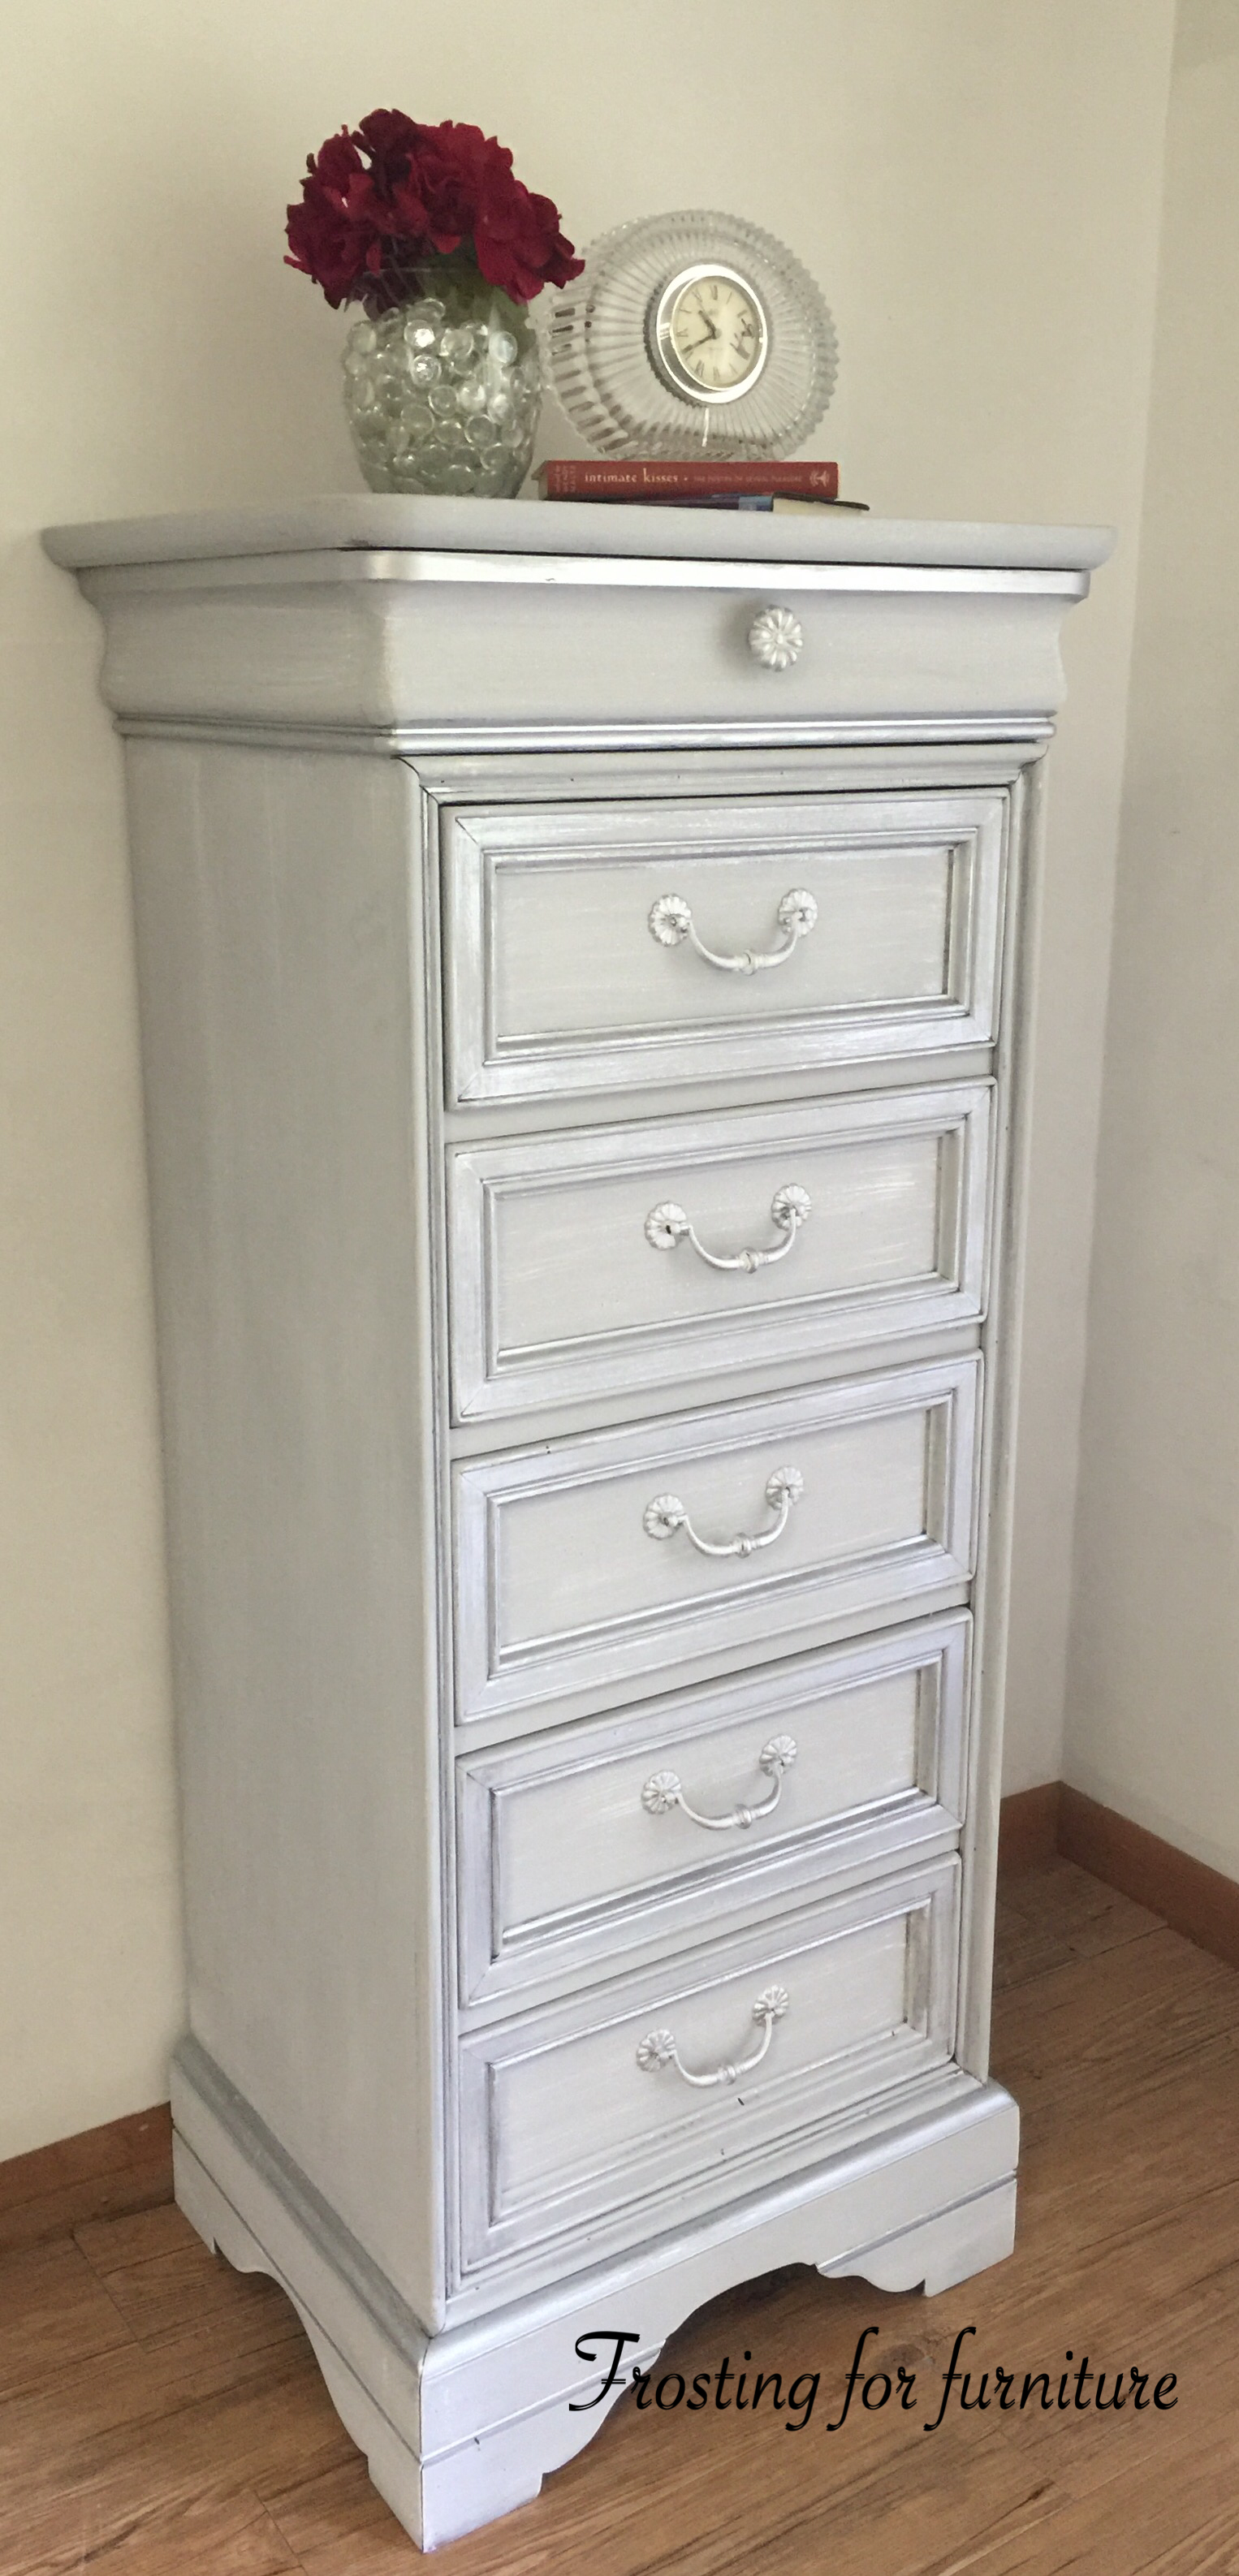 French Provincial lingerie chest painted in Annie Sloan Paris Gray Metallic Masters Silver dry brushed with